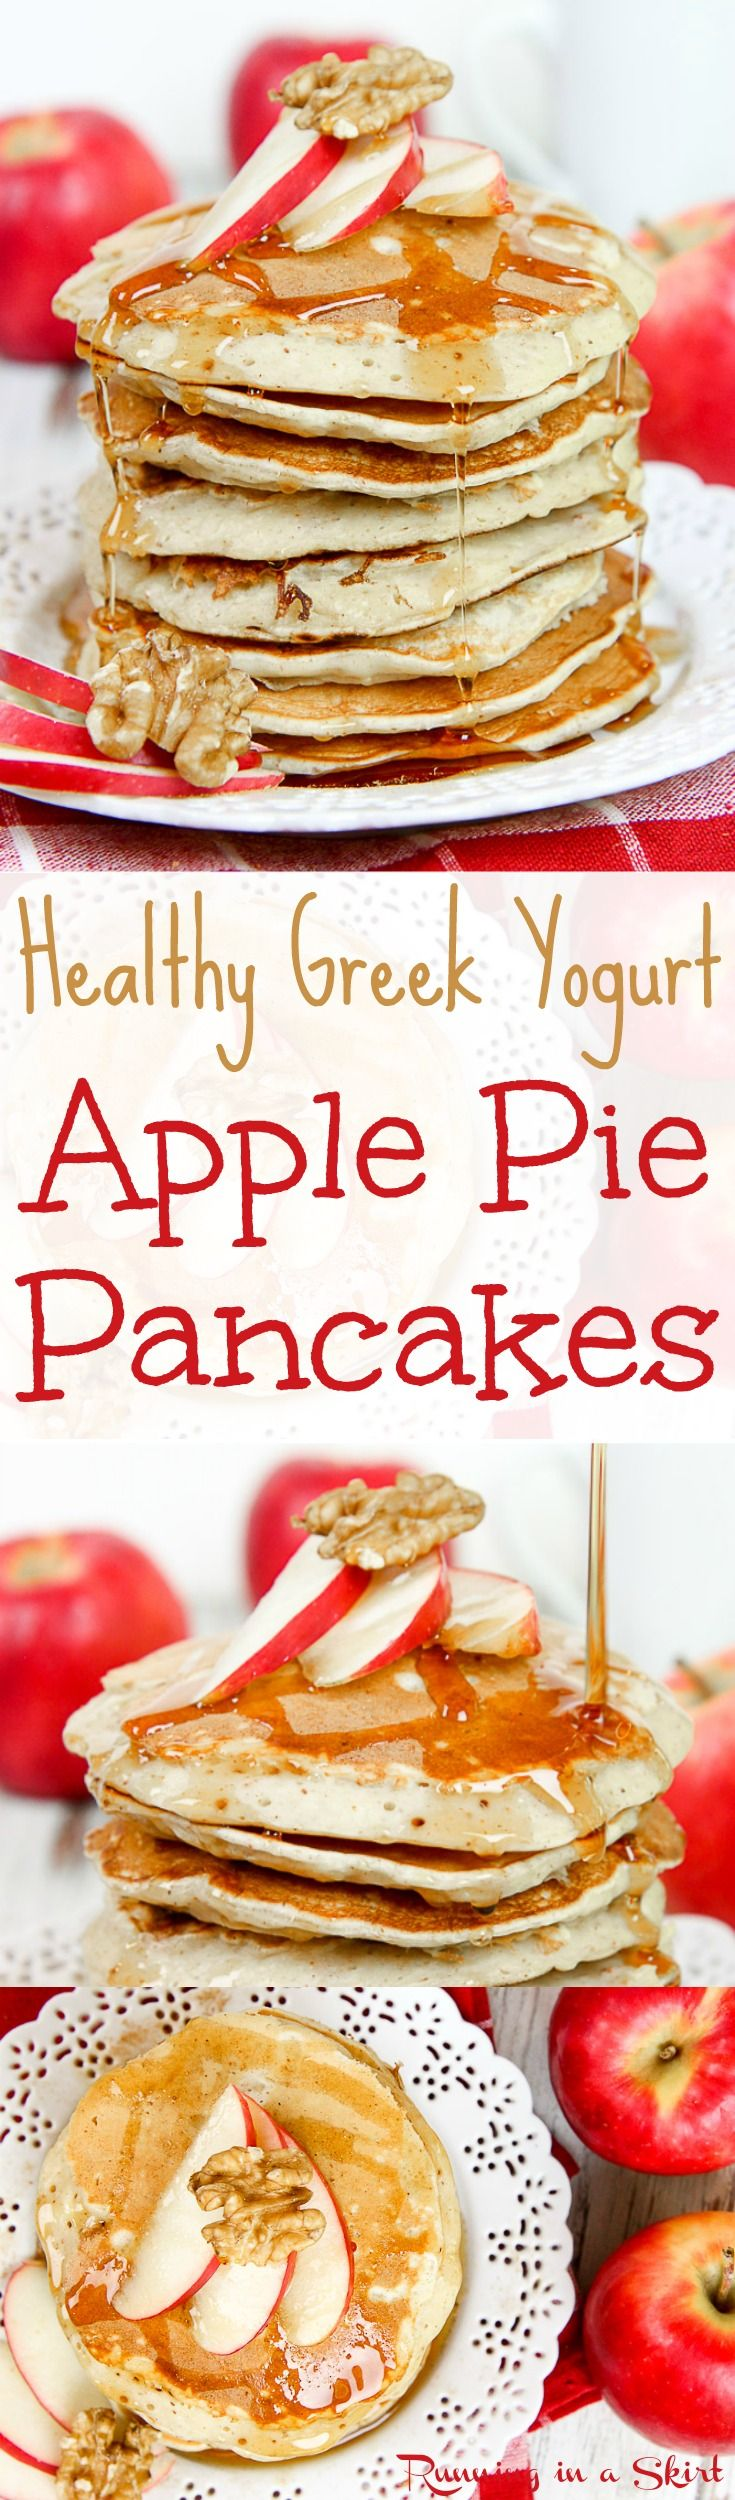 Healthy Apple Pie Greek Yogurt Pancakes recipe.  Easy, simple healthy breakfasts.  Filled with cinnamon, spices and fresh sweet apples. Perfect fall breakfast and you get an extra protein boost from the greek yogurt. / Running in a Skirt